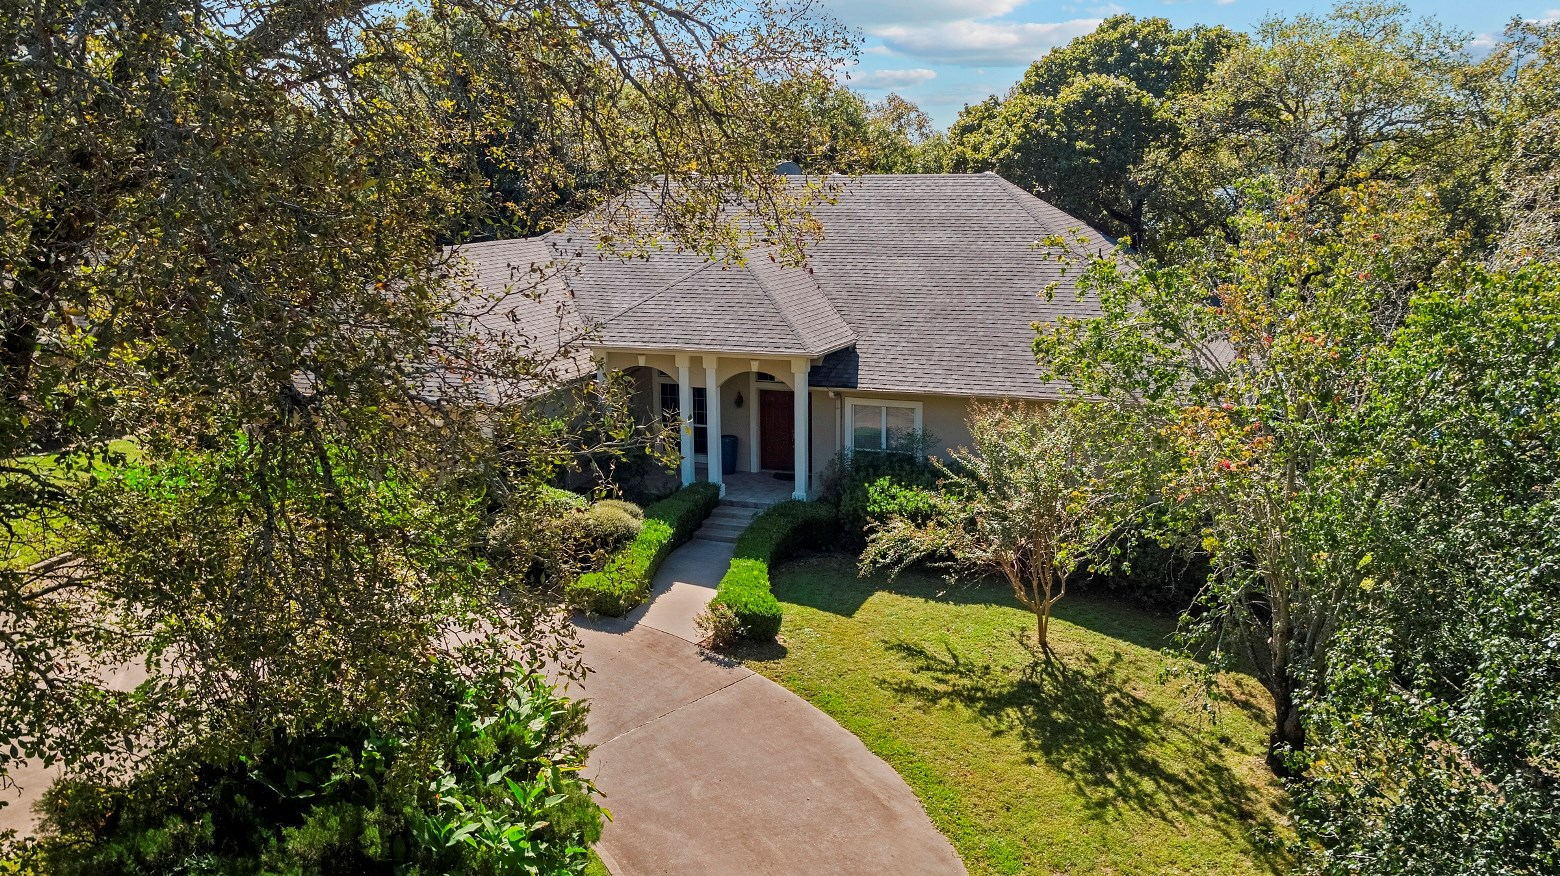 WATERFRONT HOME FOR SALE ON LAKE TYLER | EAST TX REAL ESTATE